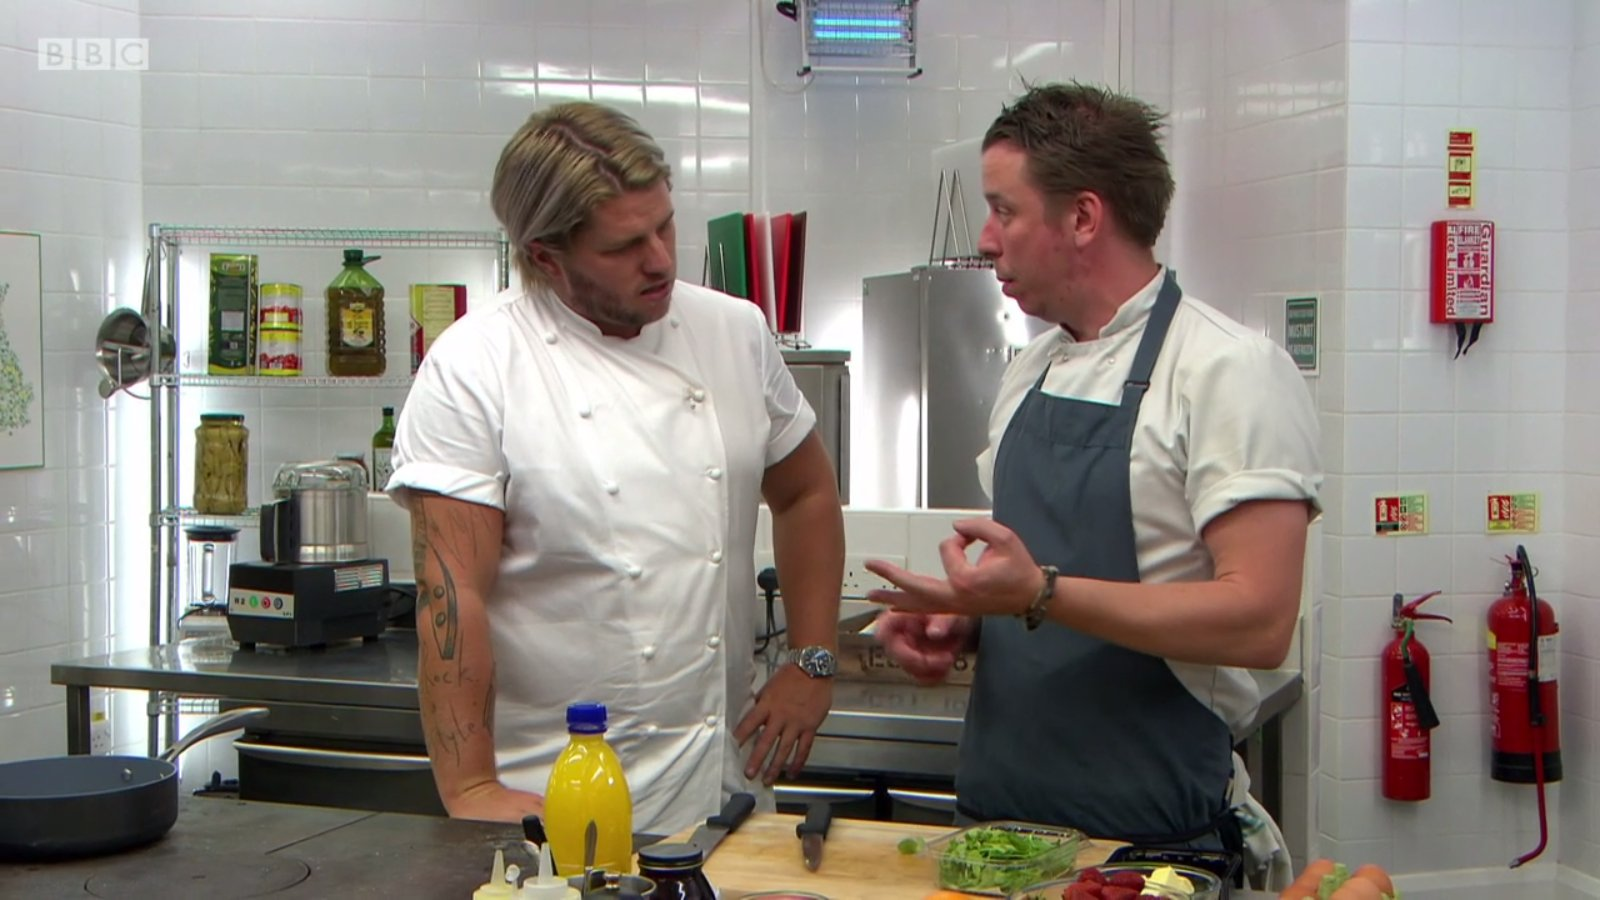 Andy Clatworthy and judge Michael O'Hare, Great British Menu 2017